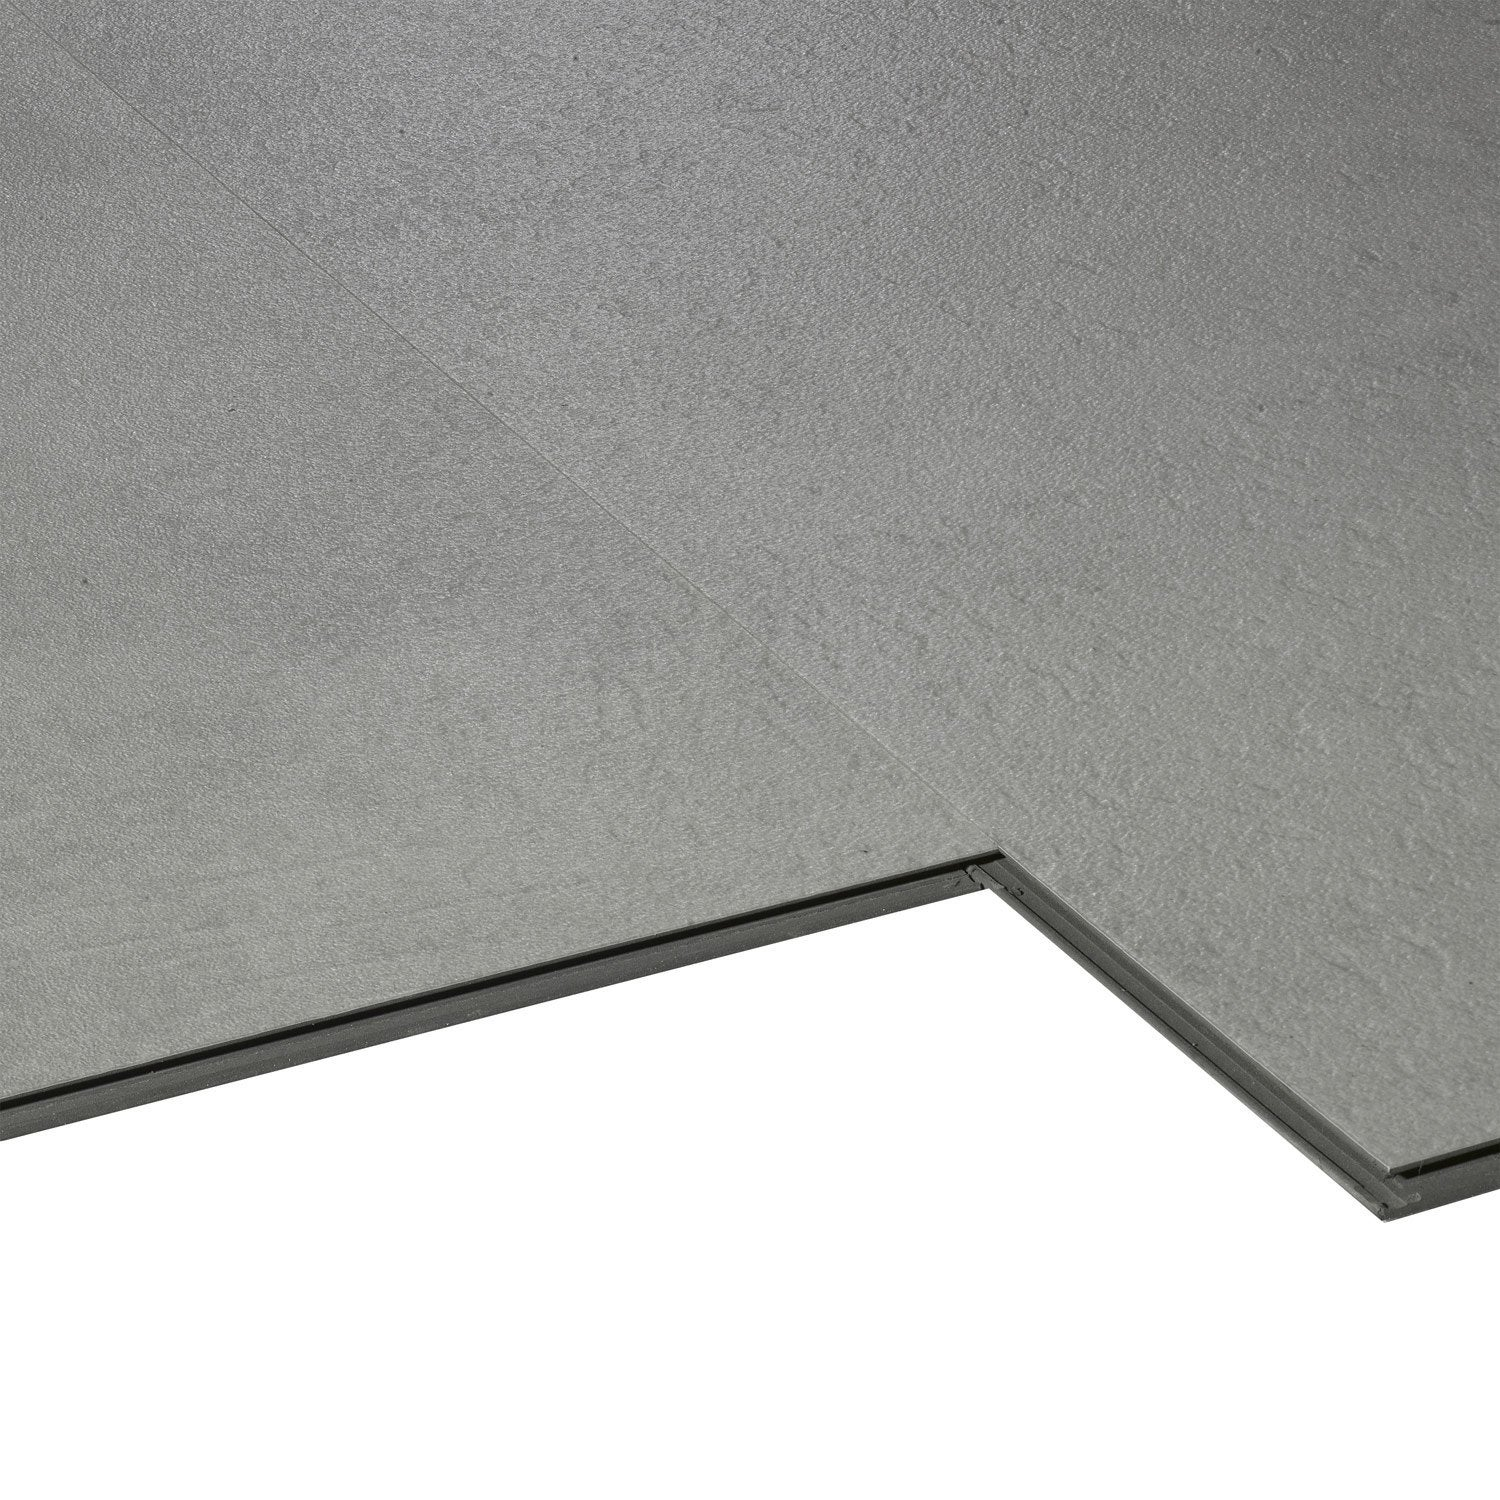 Dalle pvc clipsable gris soft grey aero city aero leroy for Dalle pvc sur carrelage